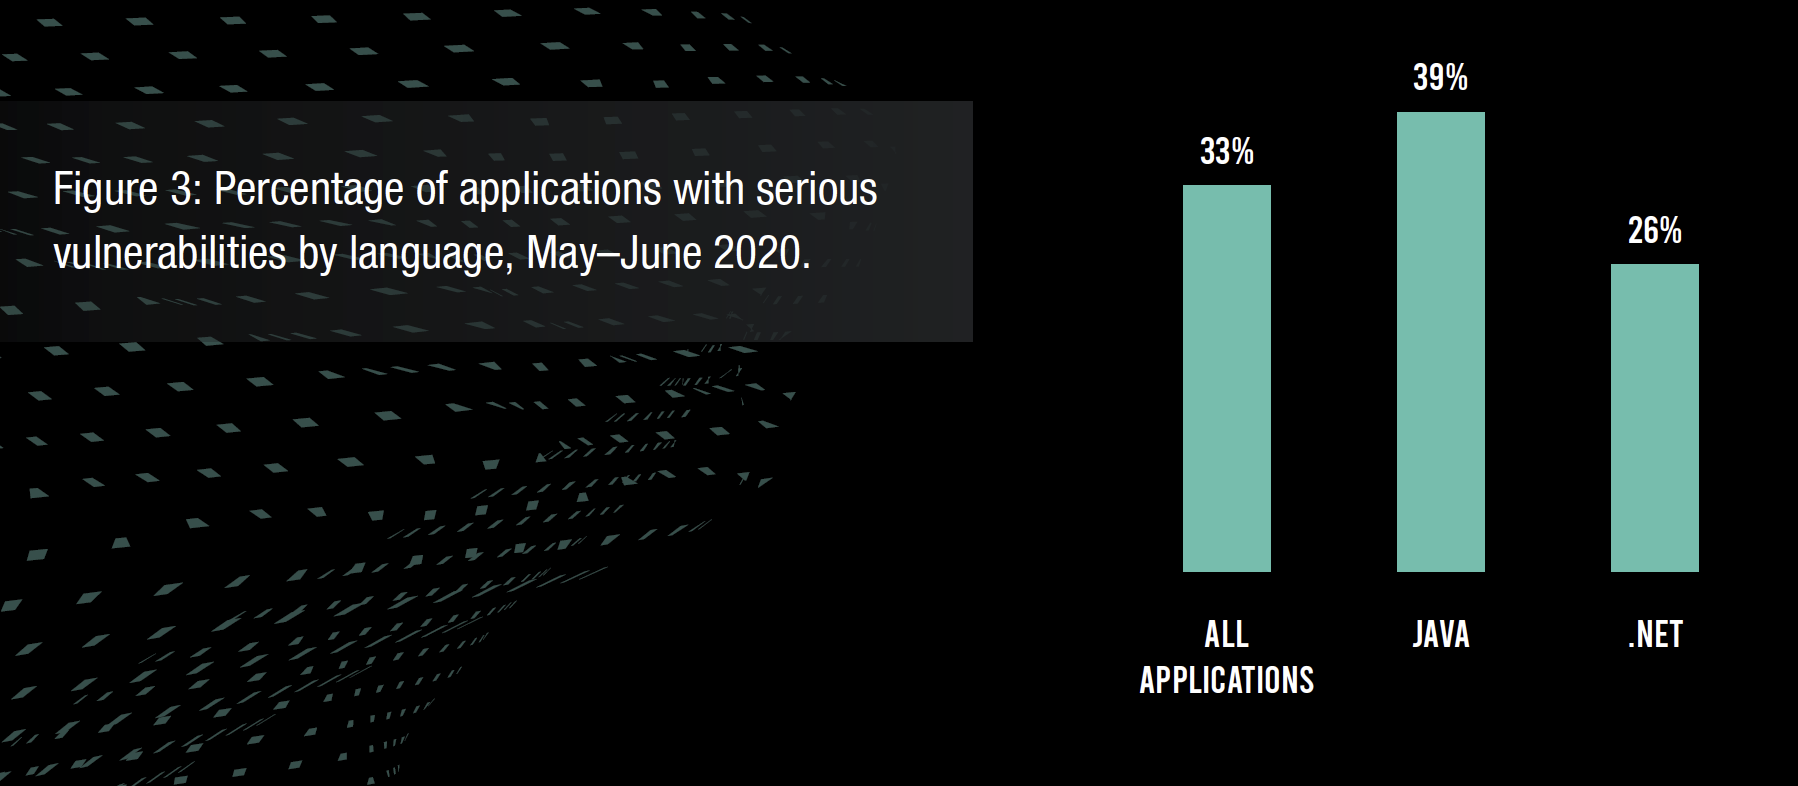 Figure 3: Percentage of applications with serious vulnerabilities by language, May–June 2020.